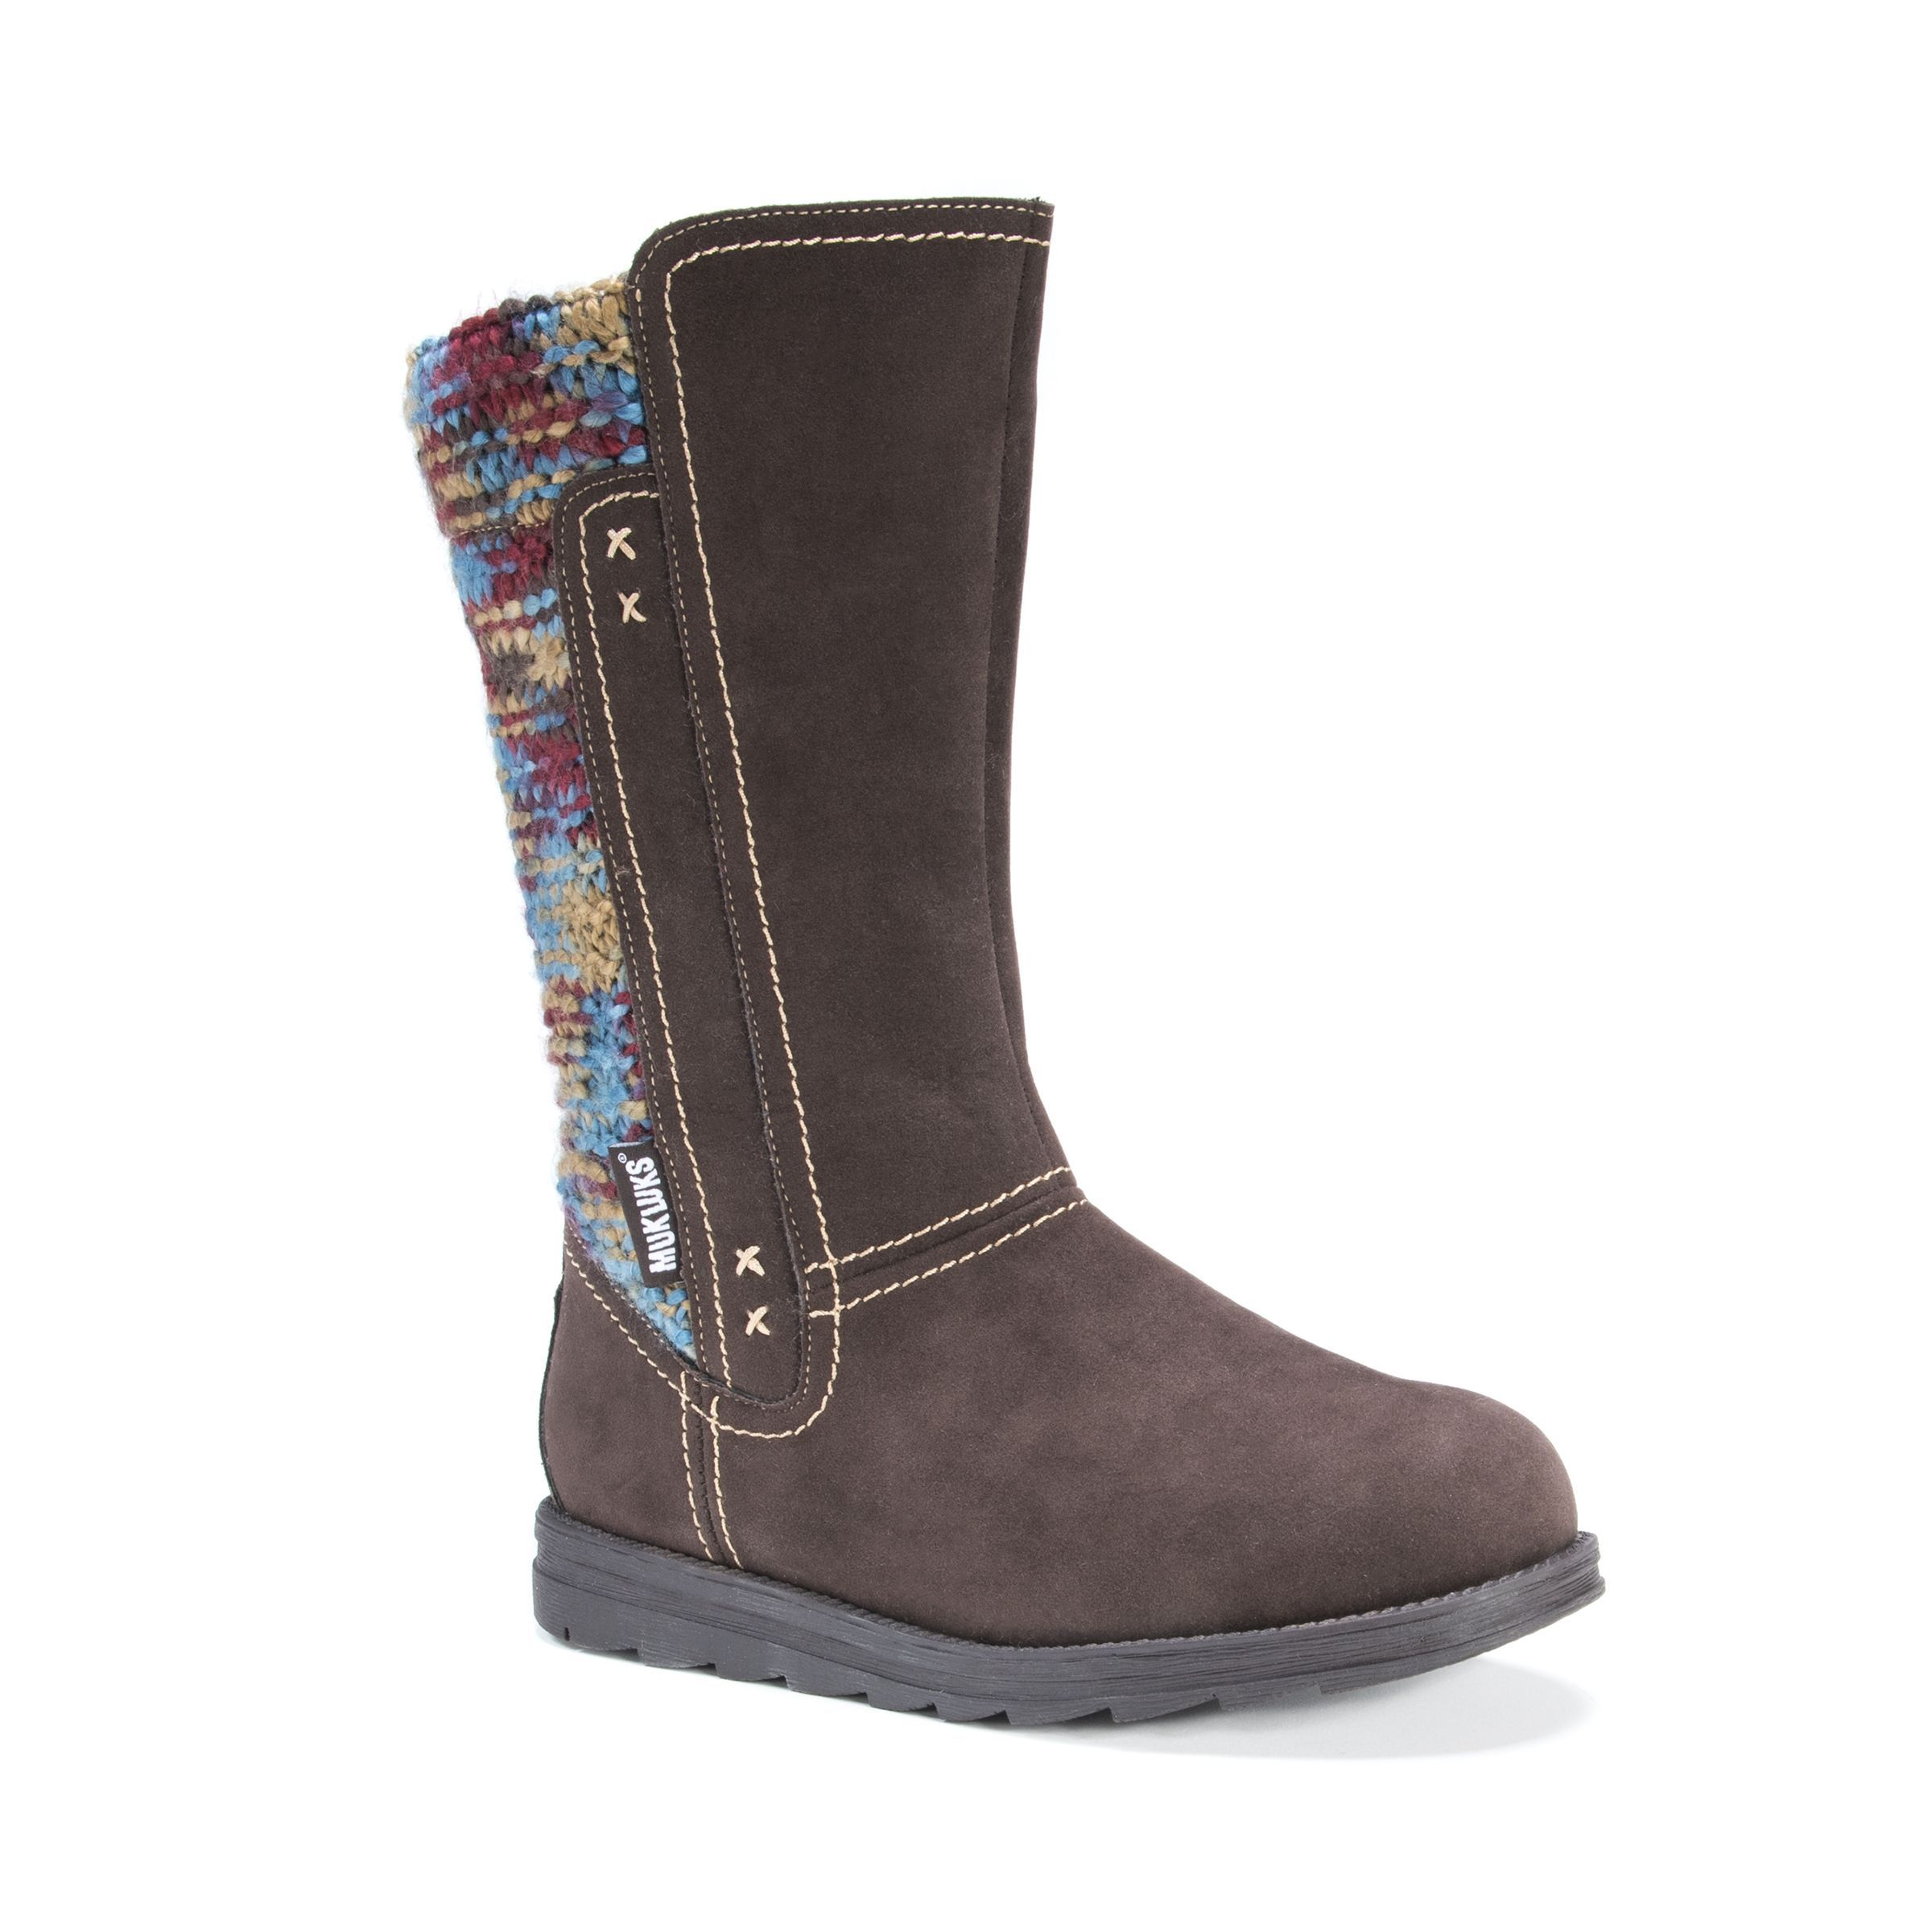 20182017 Boots Womens Luichiny High Rise Boot On Clearance